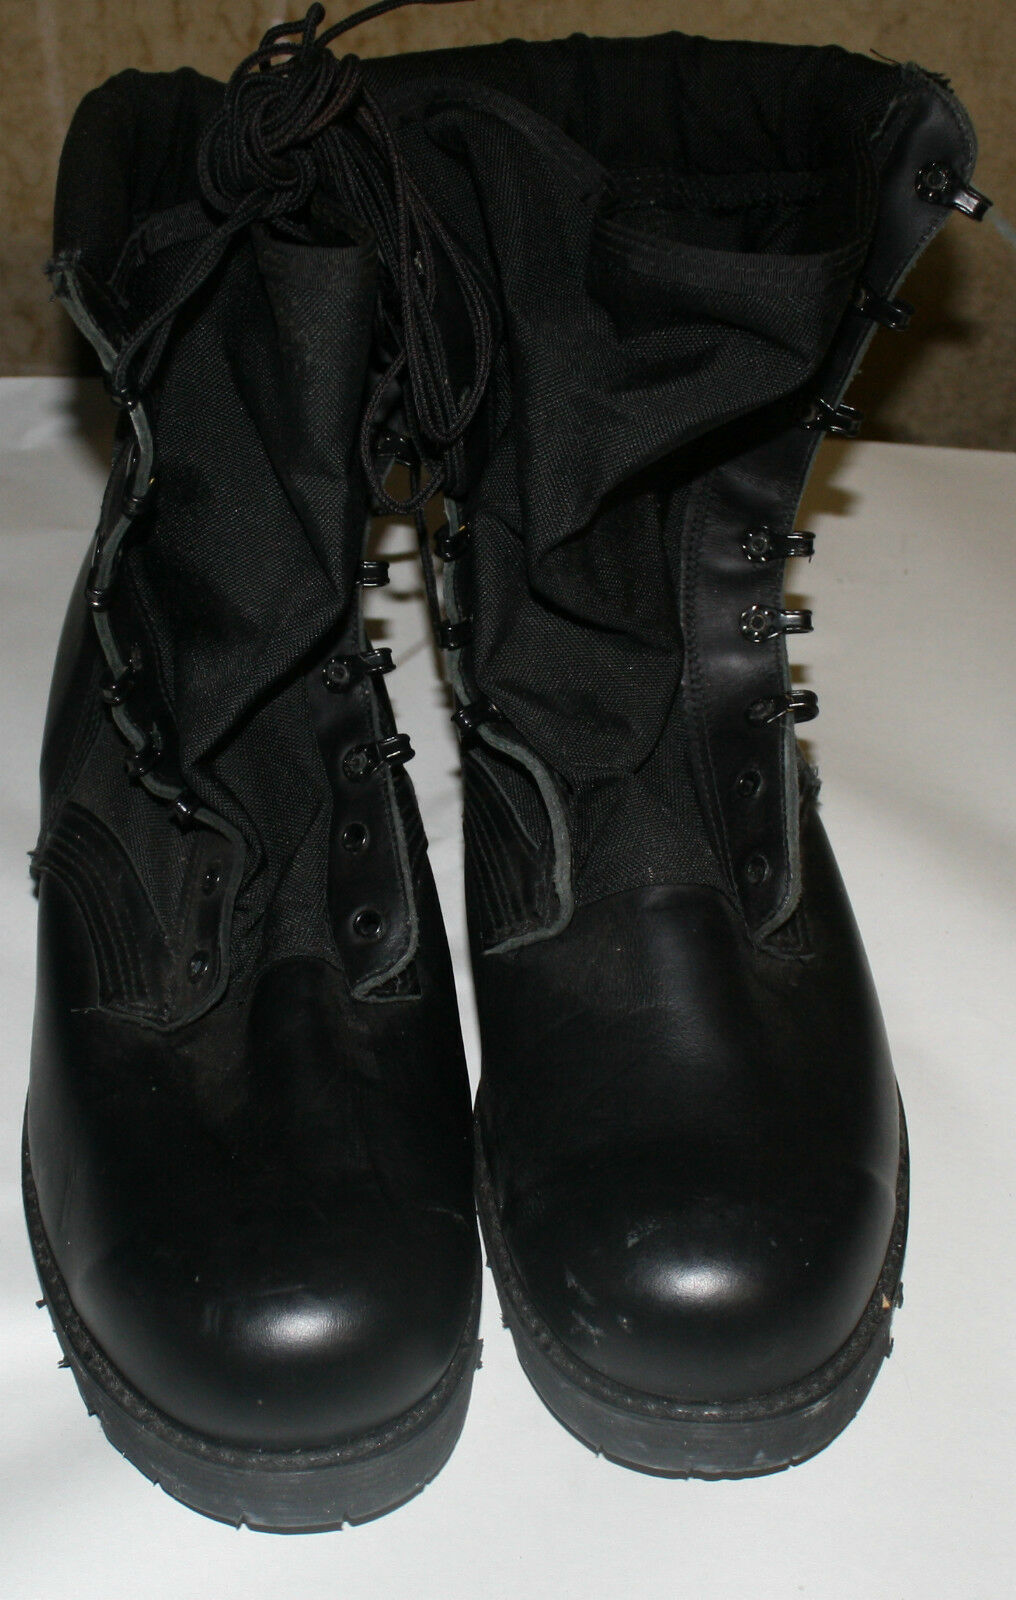 SPIKE PROTECTIVE TACTICAL BOOTS 5001 MENS SIZE 12.5 WIDE FREE SHIPPING